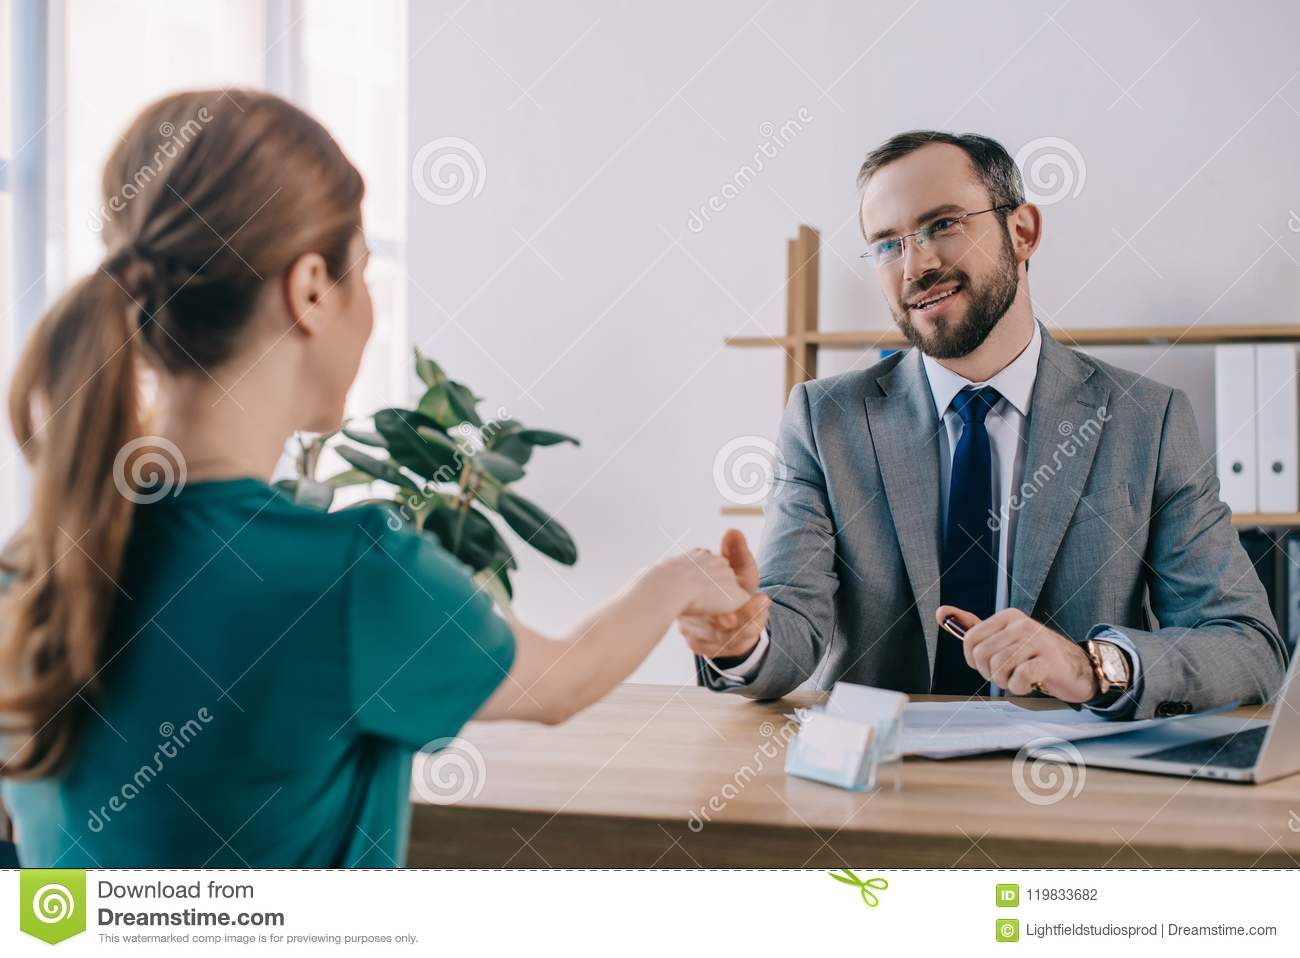 partial view of businessman and client shaking hands during meeting